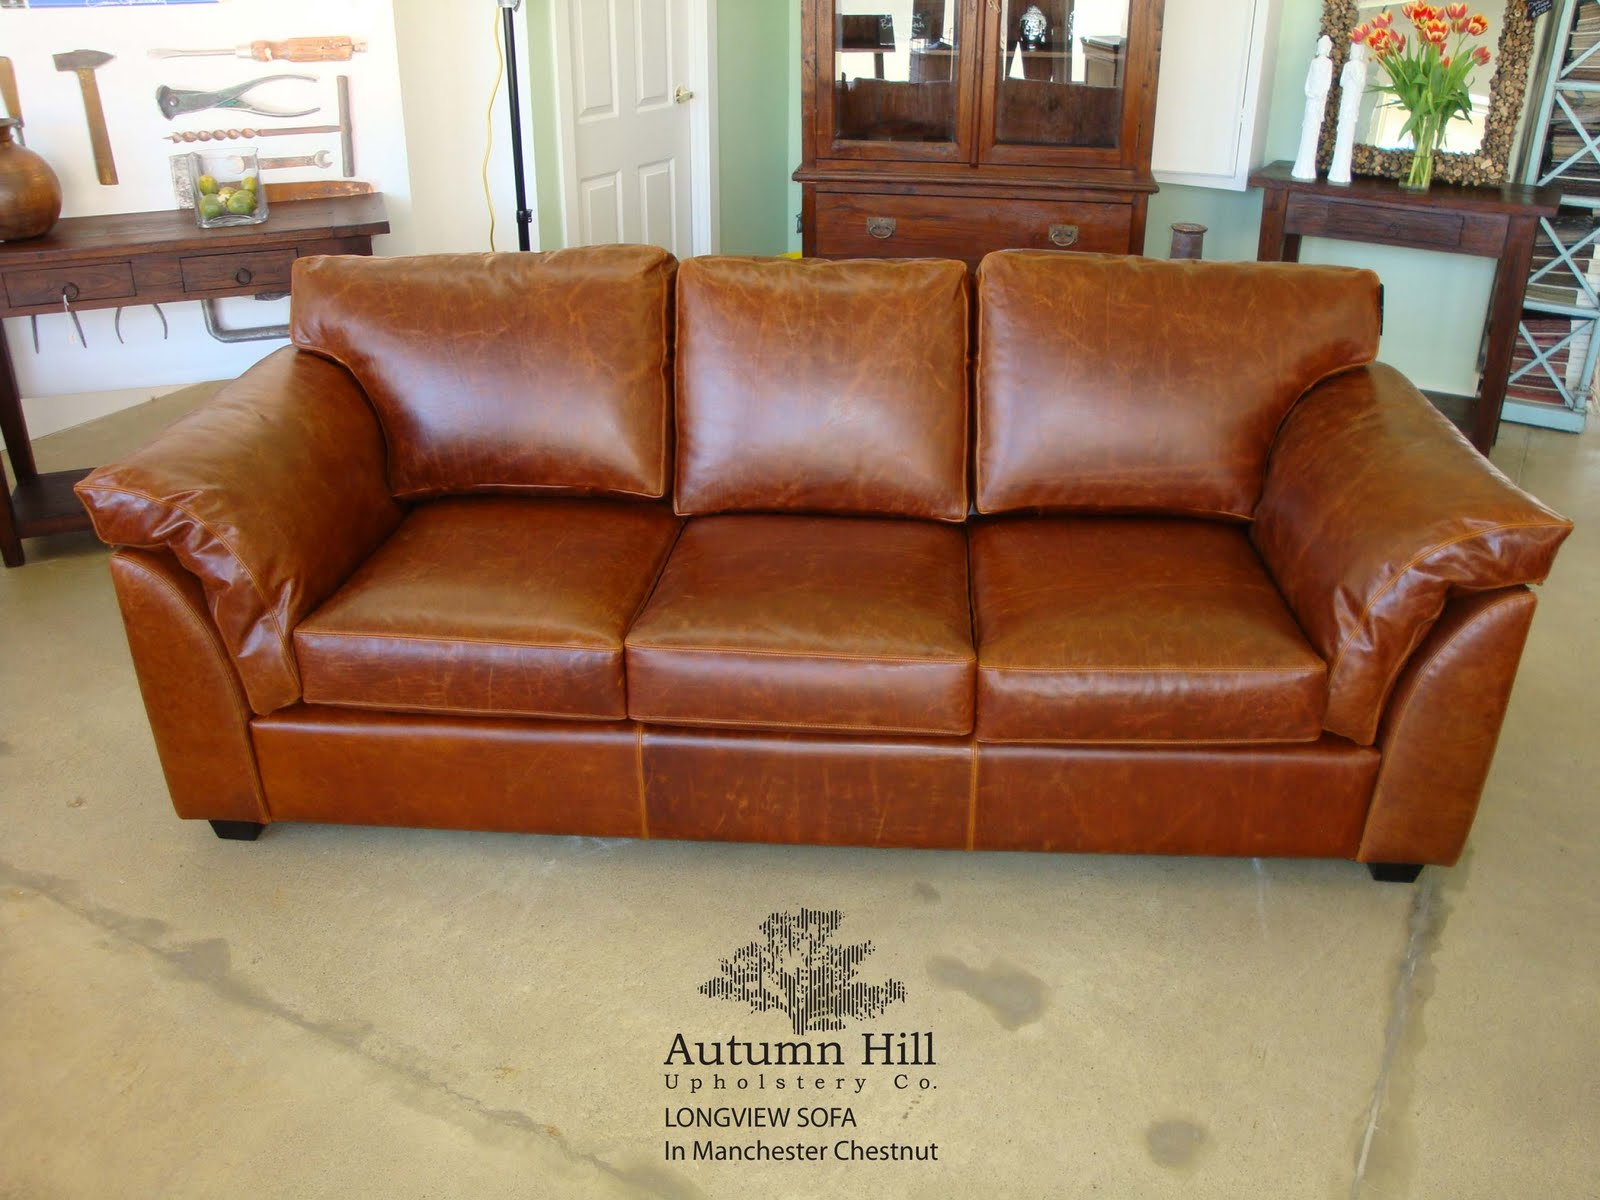 Autumn Hill Upholstery Co Longview Sofa In Manchester